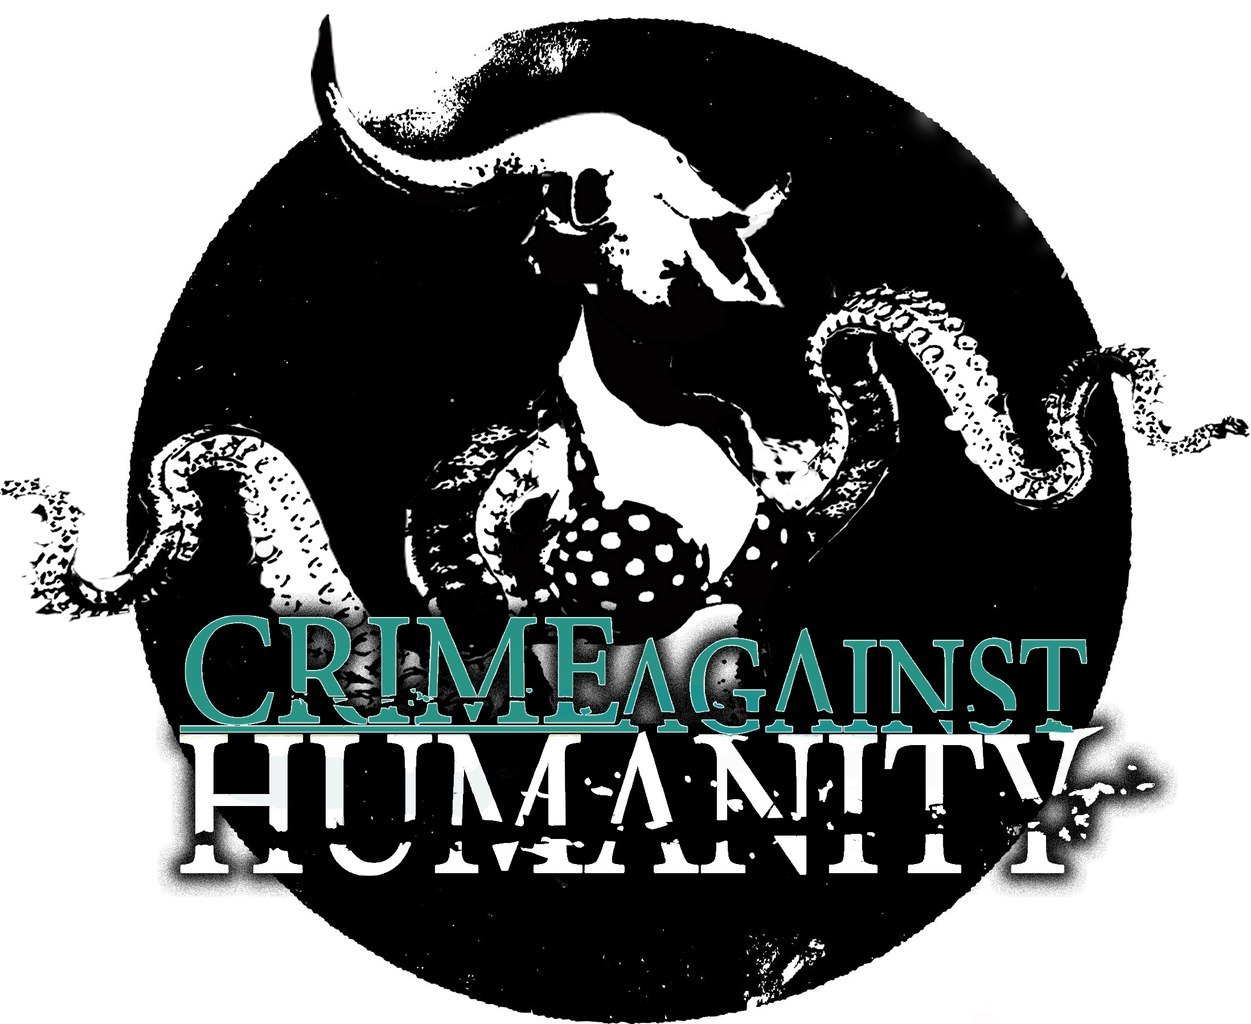 Crime Against Humanity - Черные Зеркала (Web-Single) (2012)